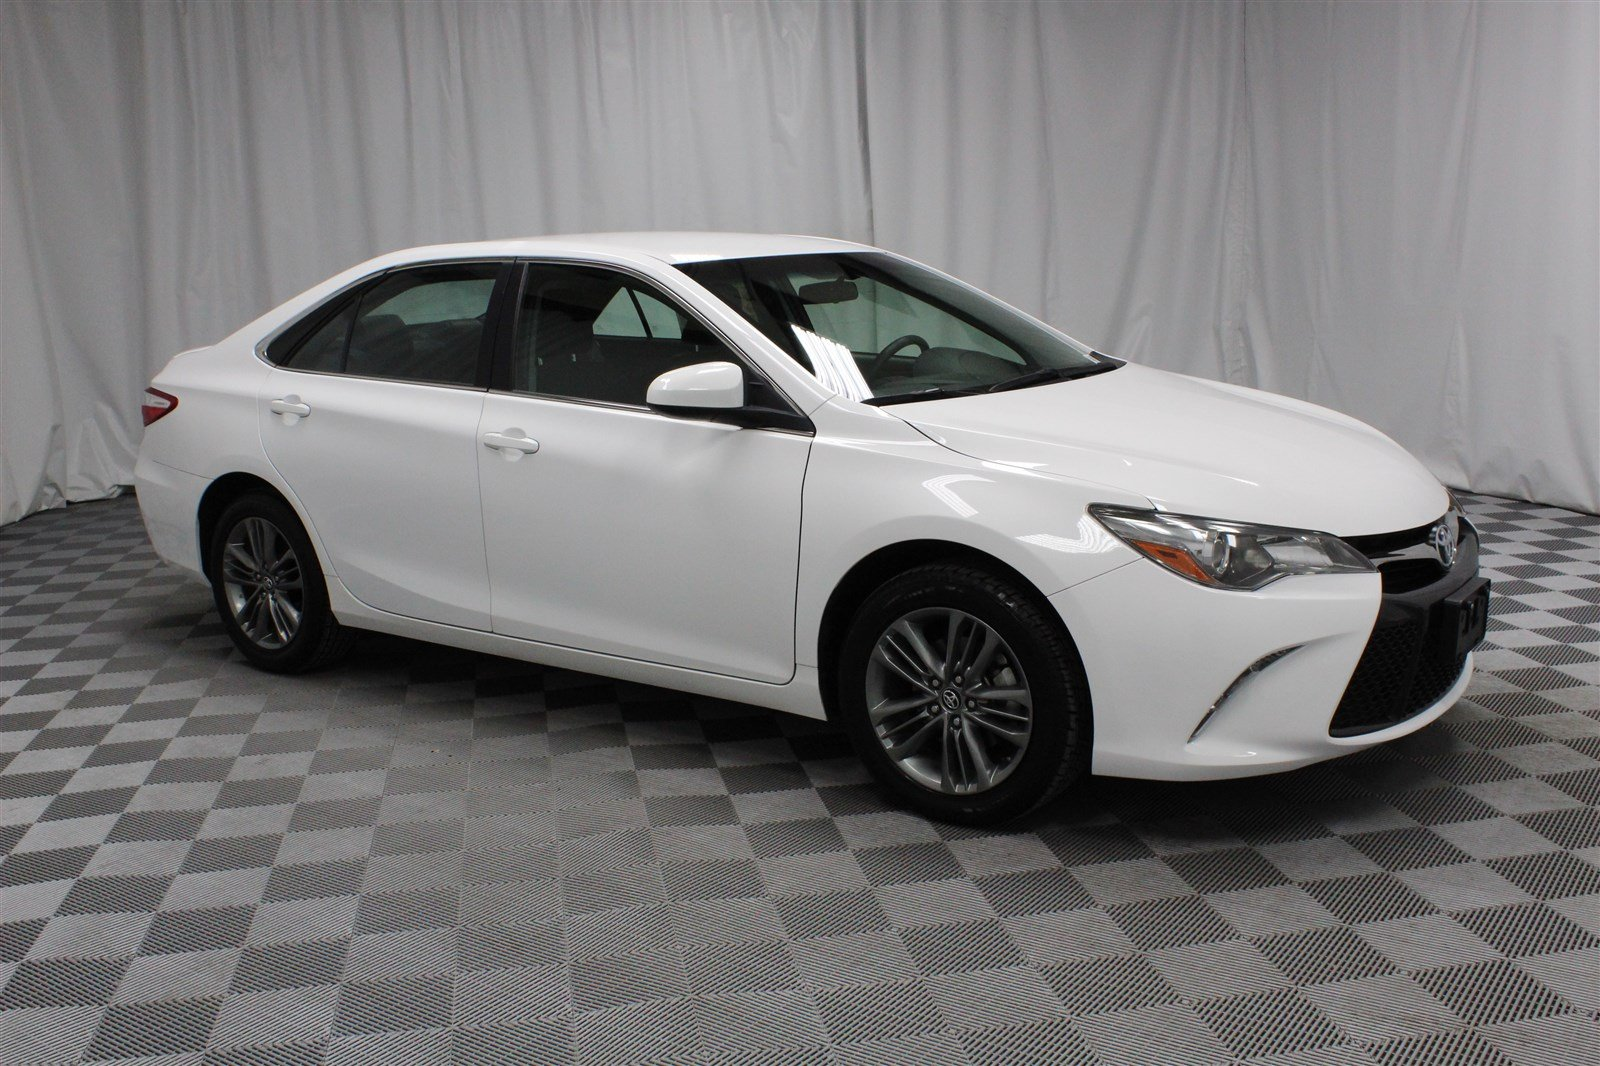 Pre Owned 2017 Toyota Camry Se Sedan In Wichita E570171 Super Car Guys